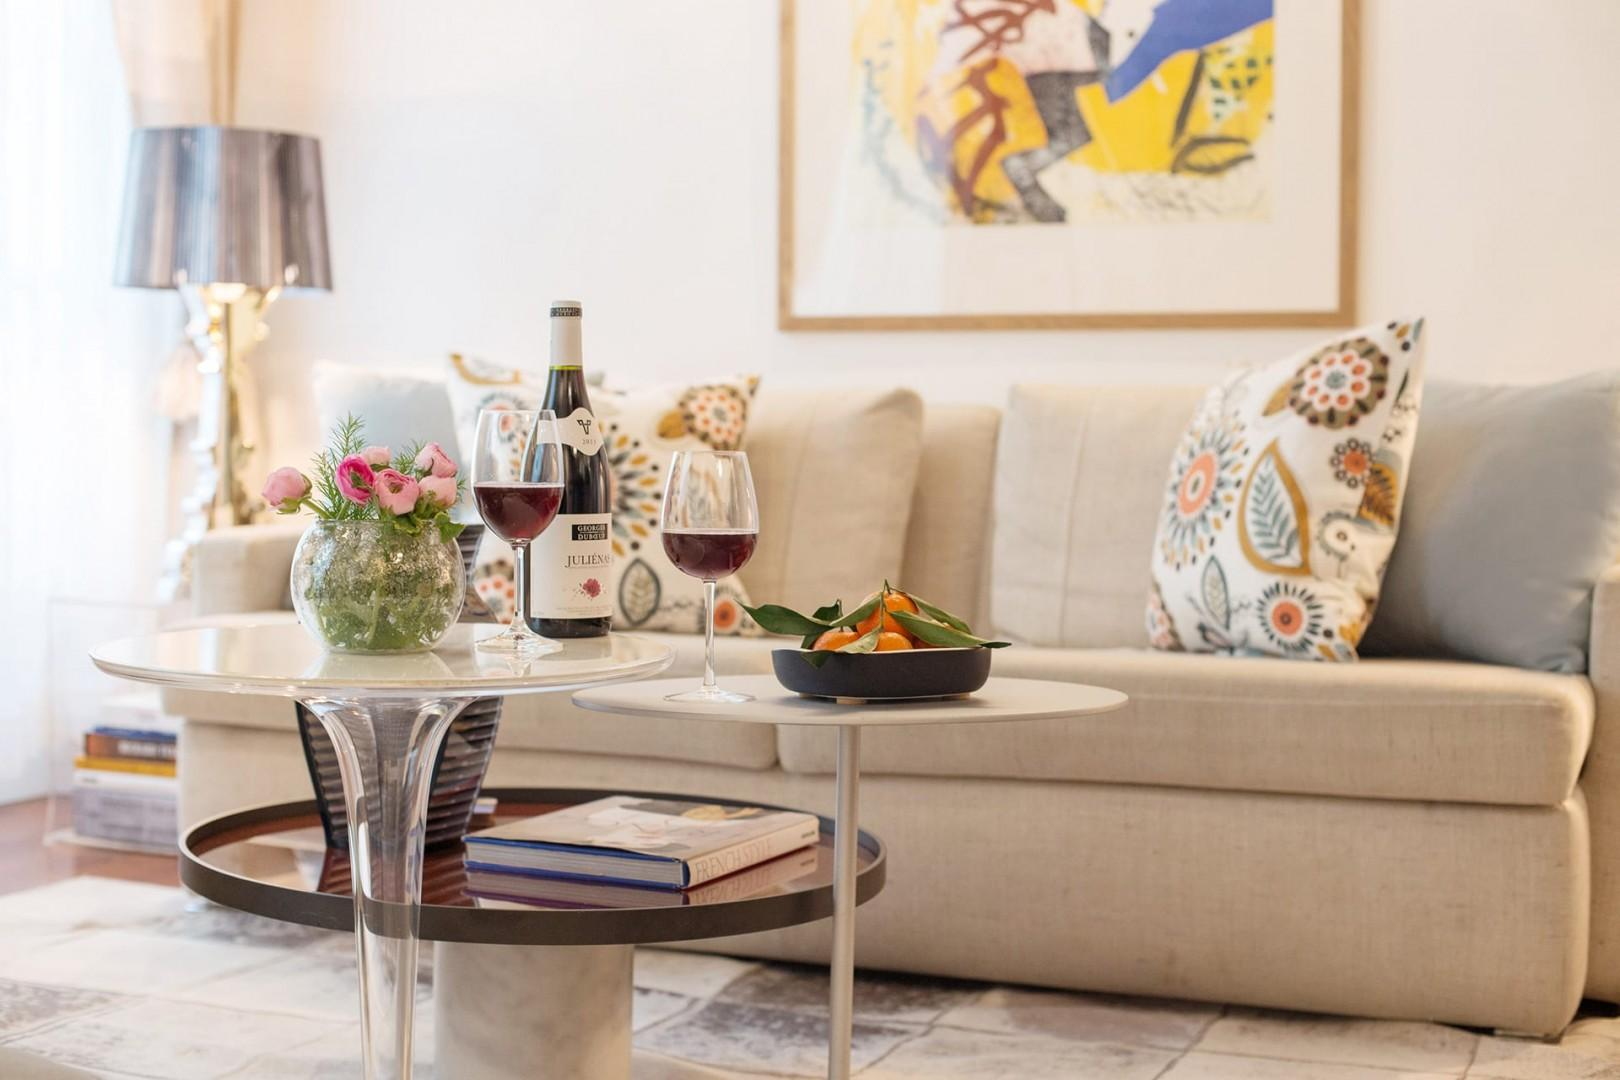 Toast your arrival in Paris with a glass or two of wine!